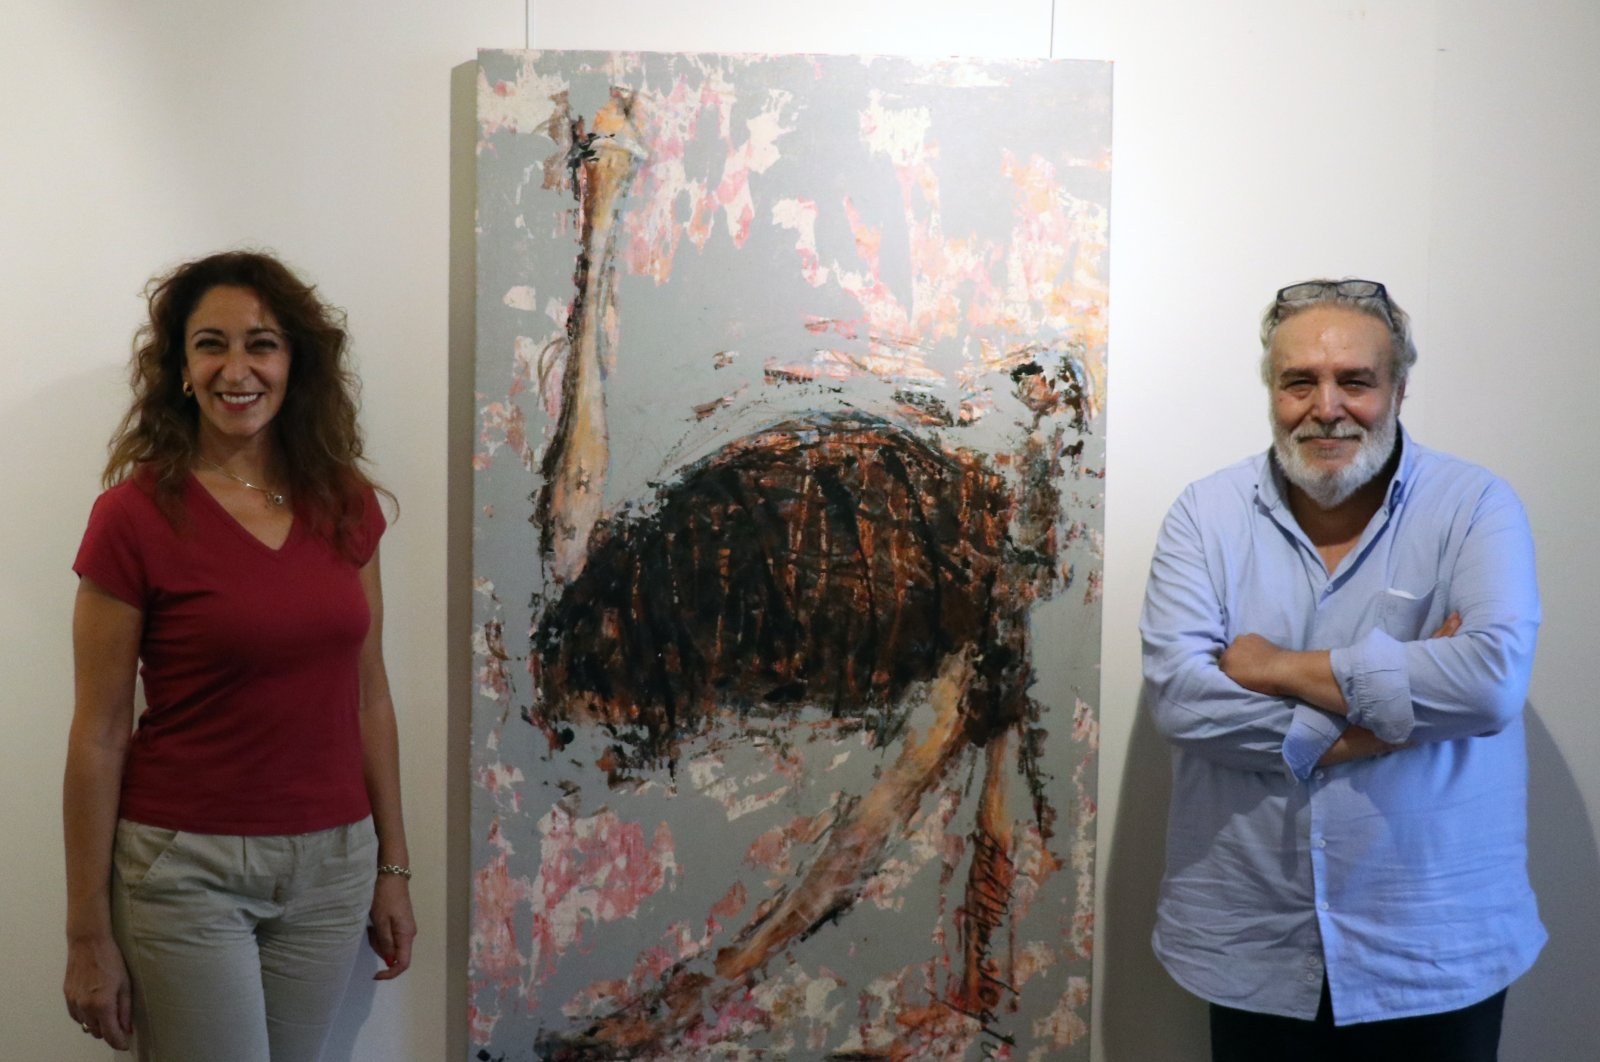 Artist İpek Mursaloğlu (L) and art director Adnan Al Ahmad pose with one of the ostrich paintings at the exhibition, Istanbul, Turkey, Sept. 4, 2020. (AA PHOTO)